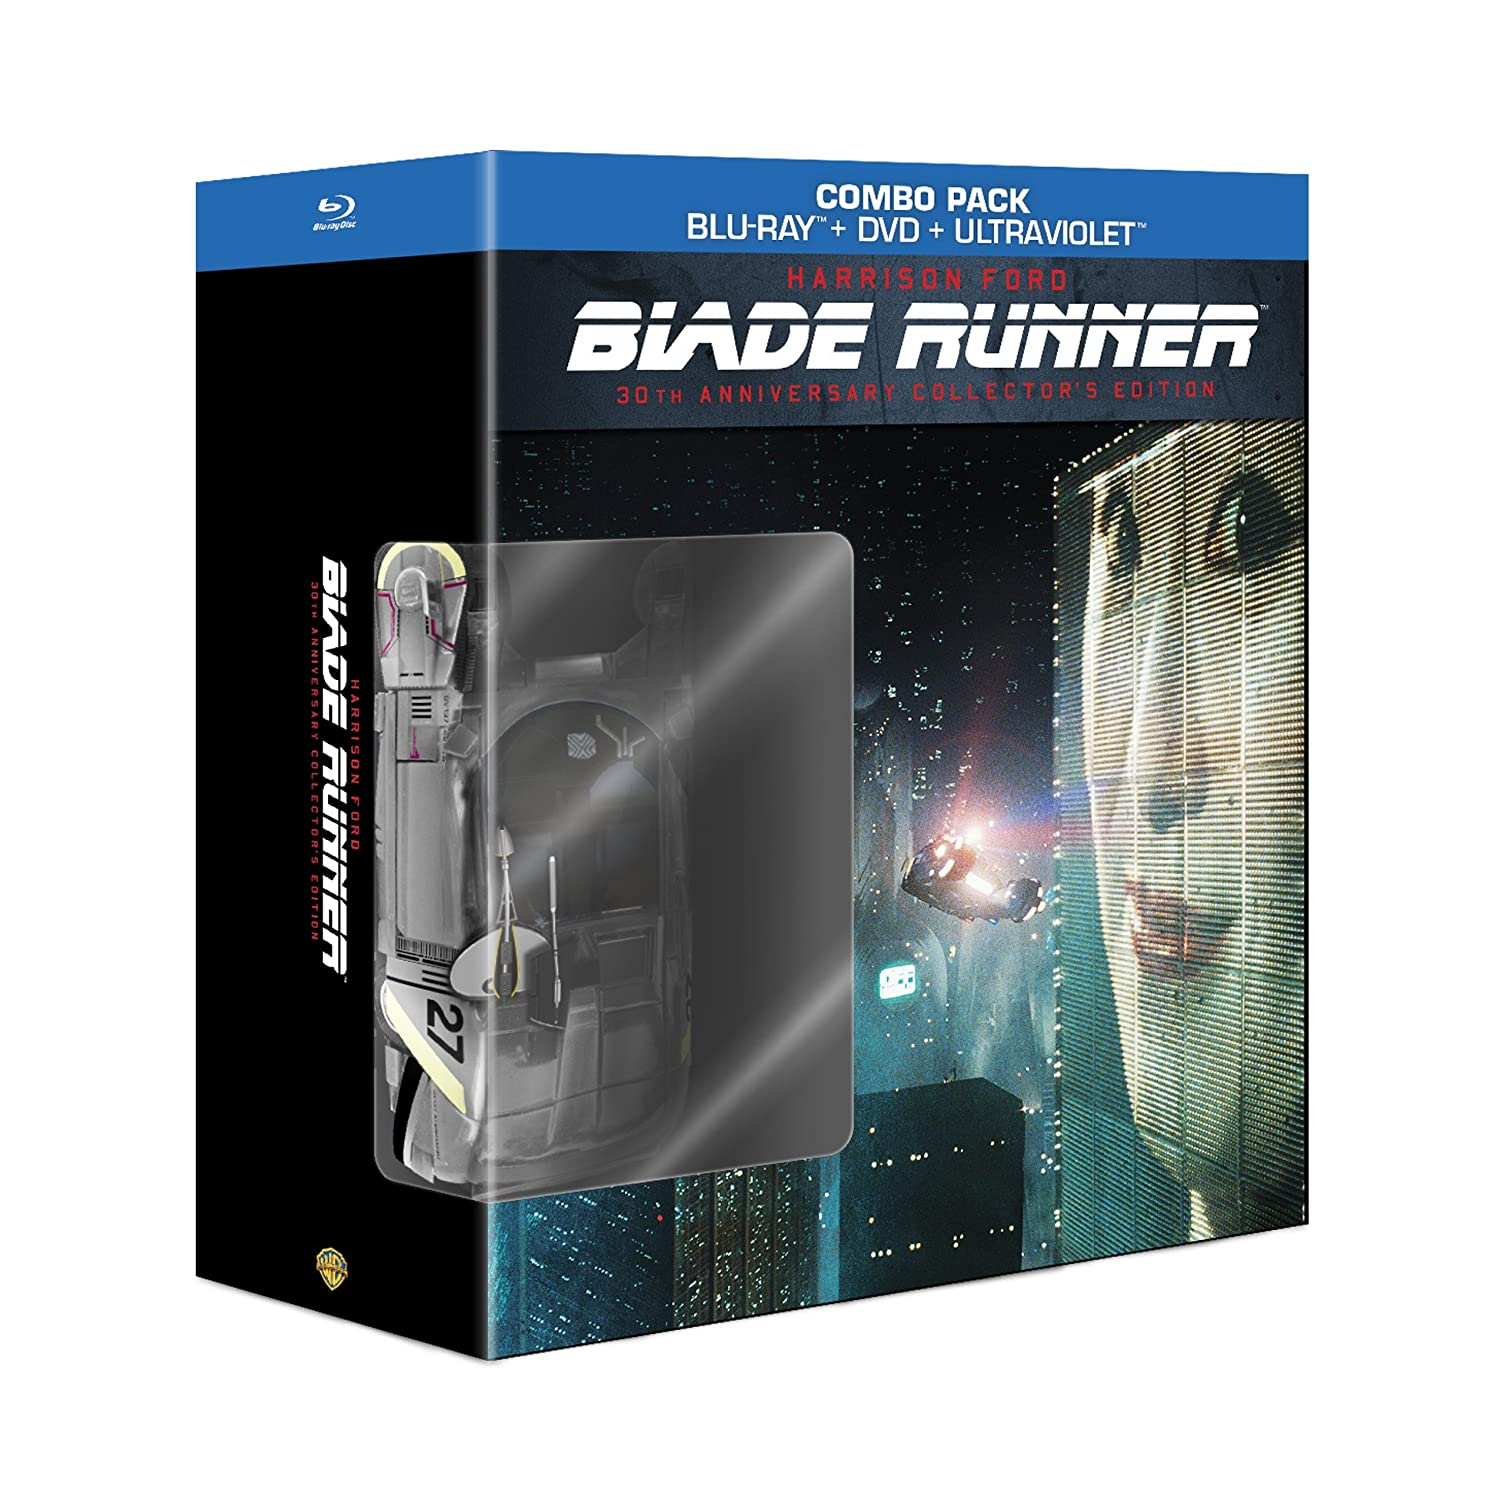 Blade Runner 30th Anniversary Collector's Edition 8160aPHdRdL._AA1500_